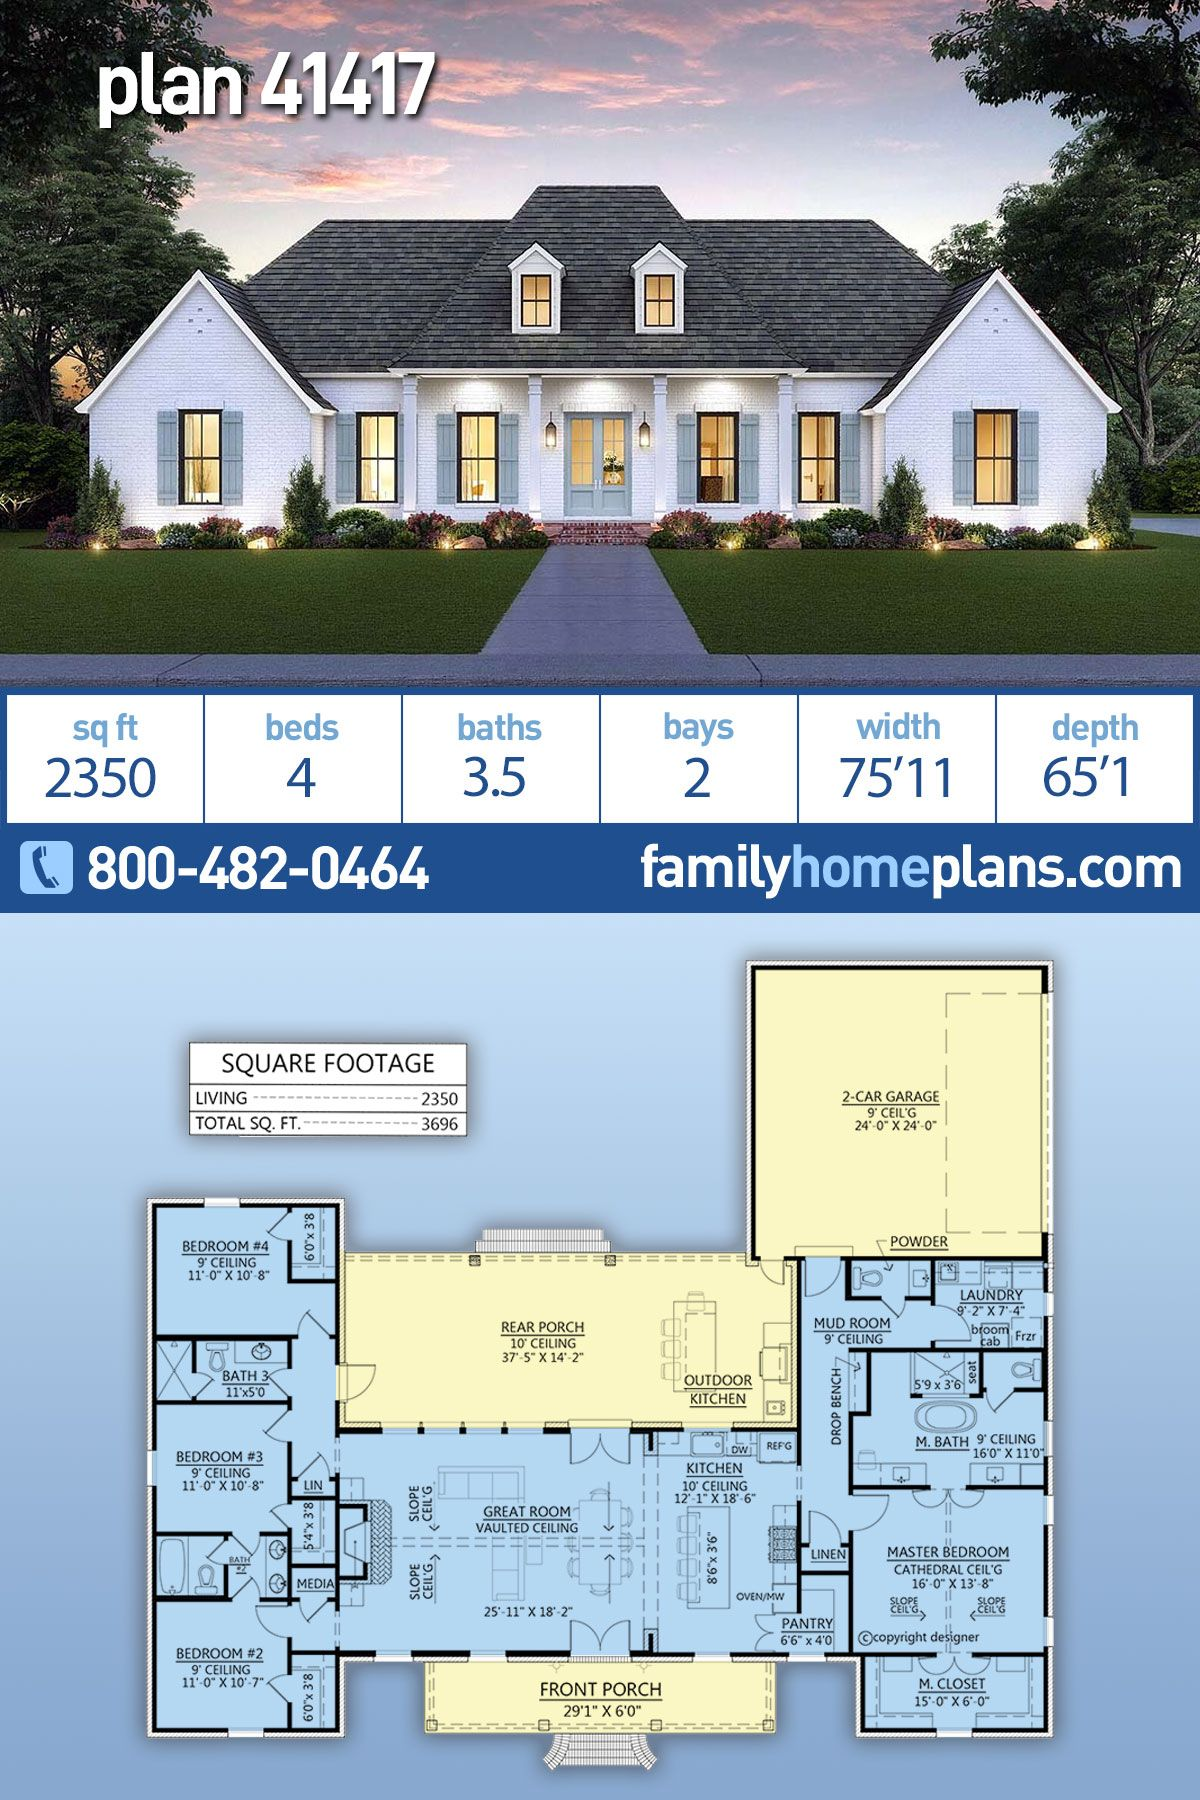 Southern Style House Plan 41417 With 4 Bed 4 Bath 2 Car Garage House Plans Farmhouse One Level House Plans House Plans